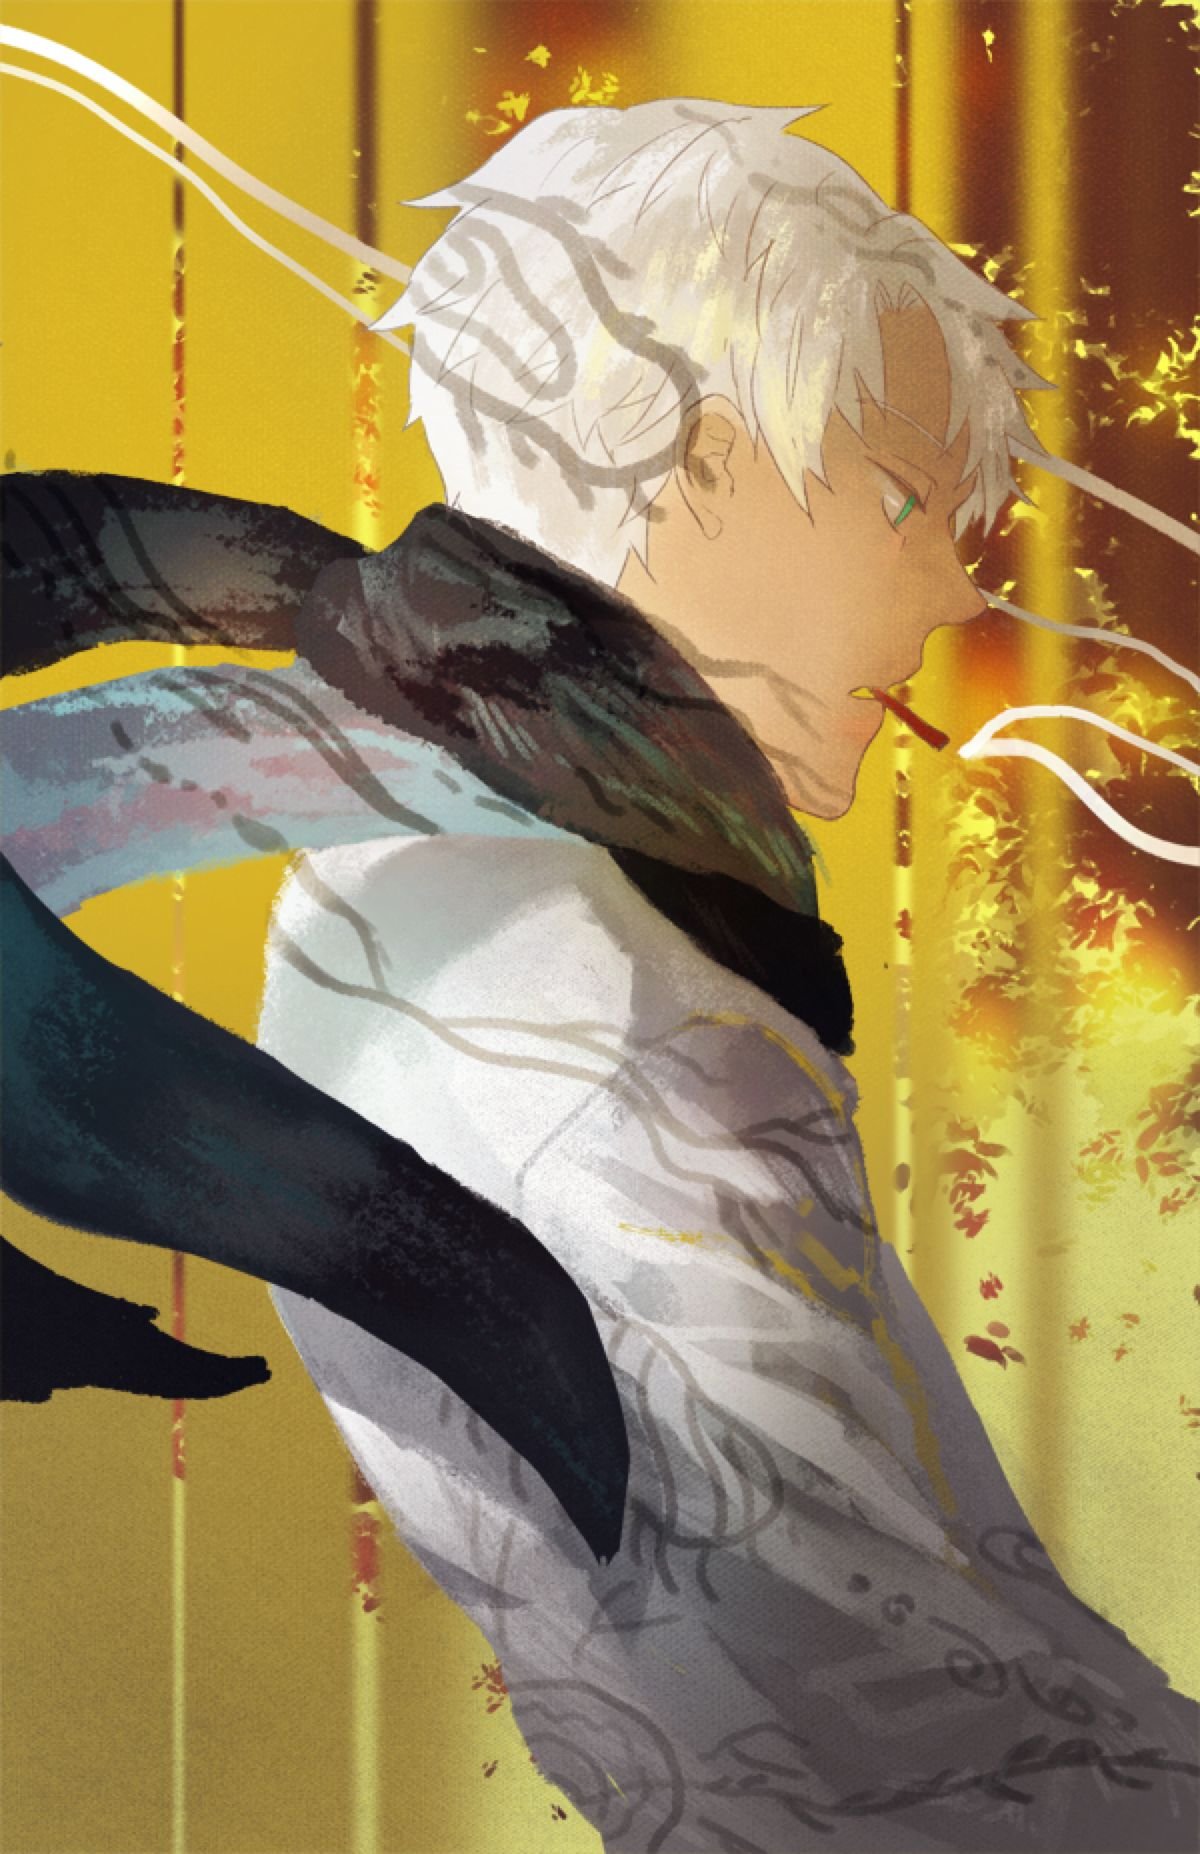 Mushishi by hakuku on DeviantArt Anime, Fan art, Island